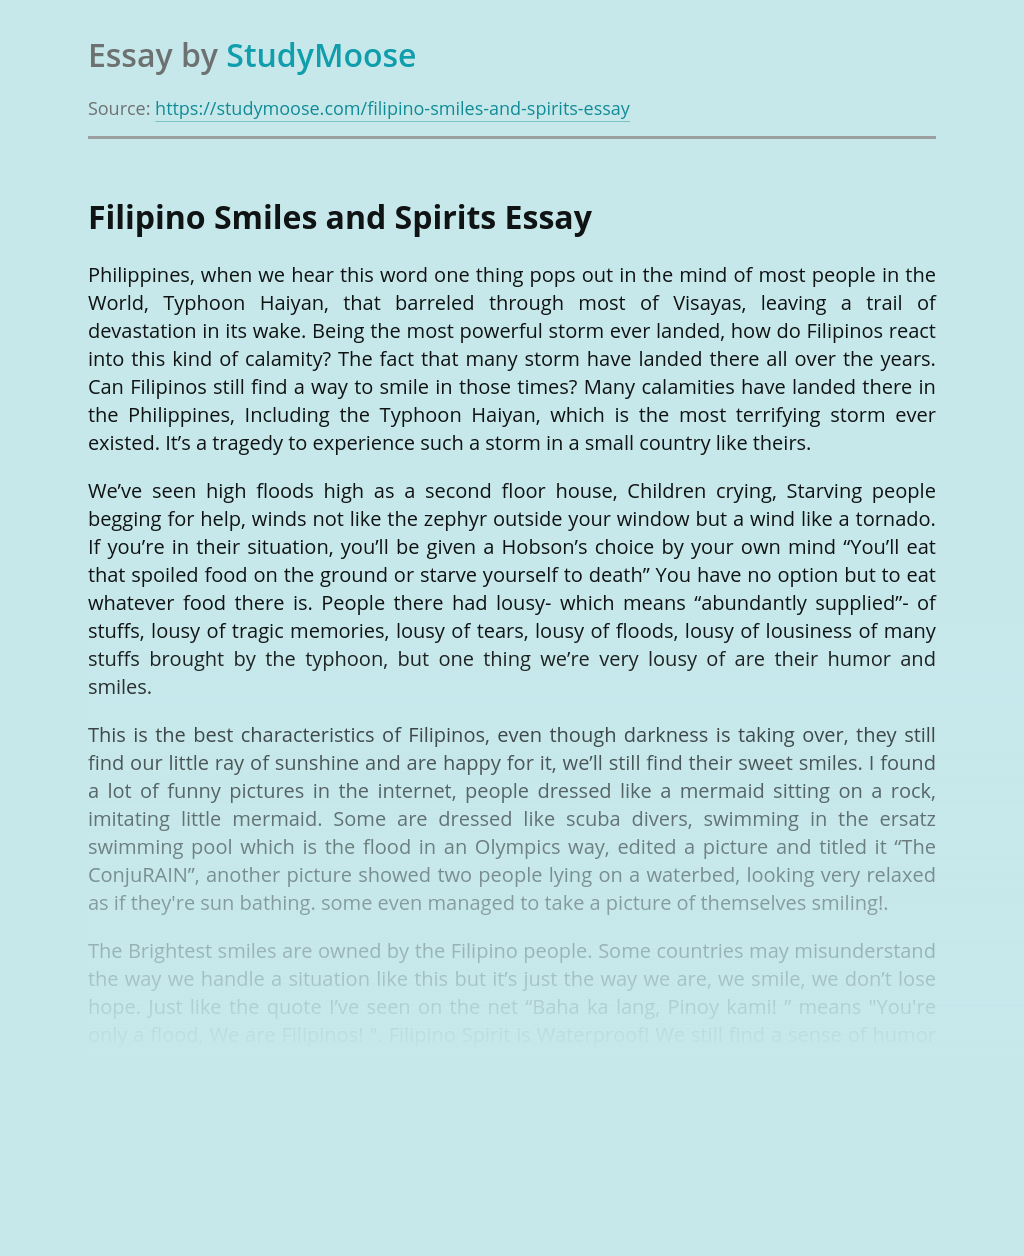 Filipino Smiles and Spirits